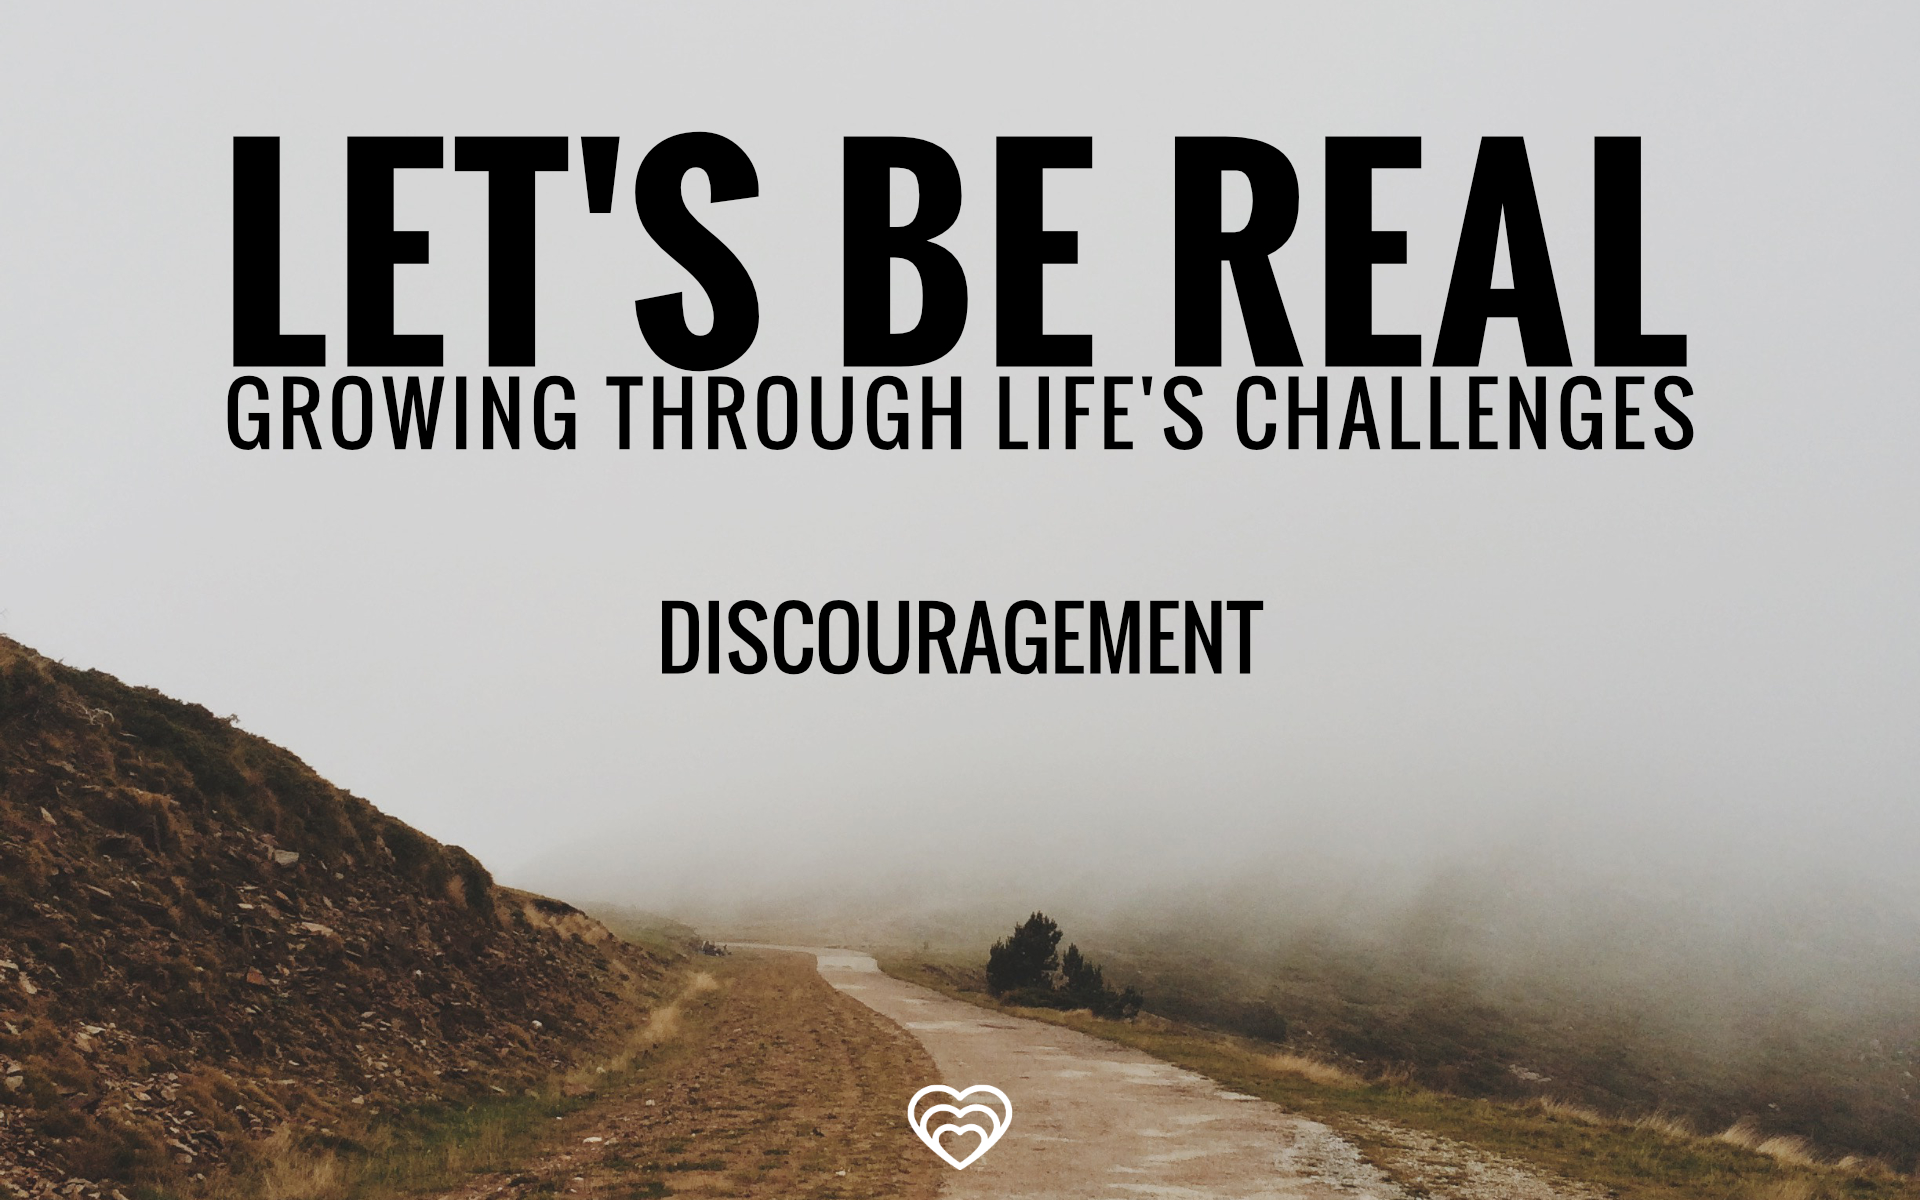 lets be real discouragement.jpg